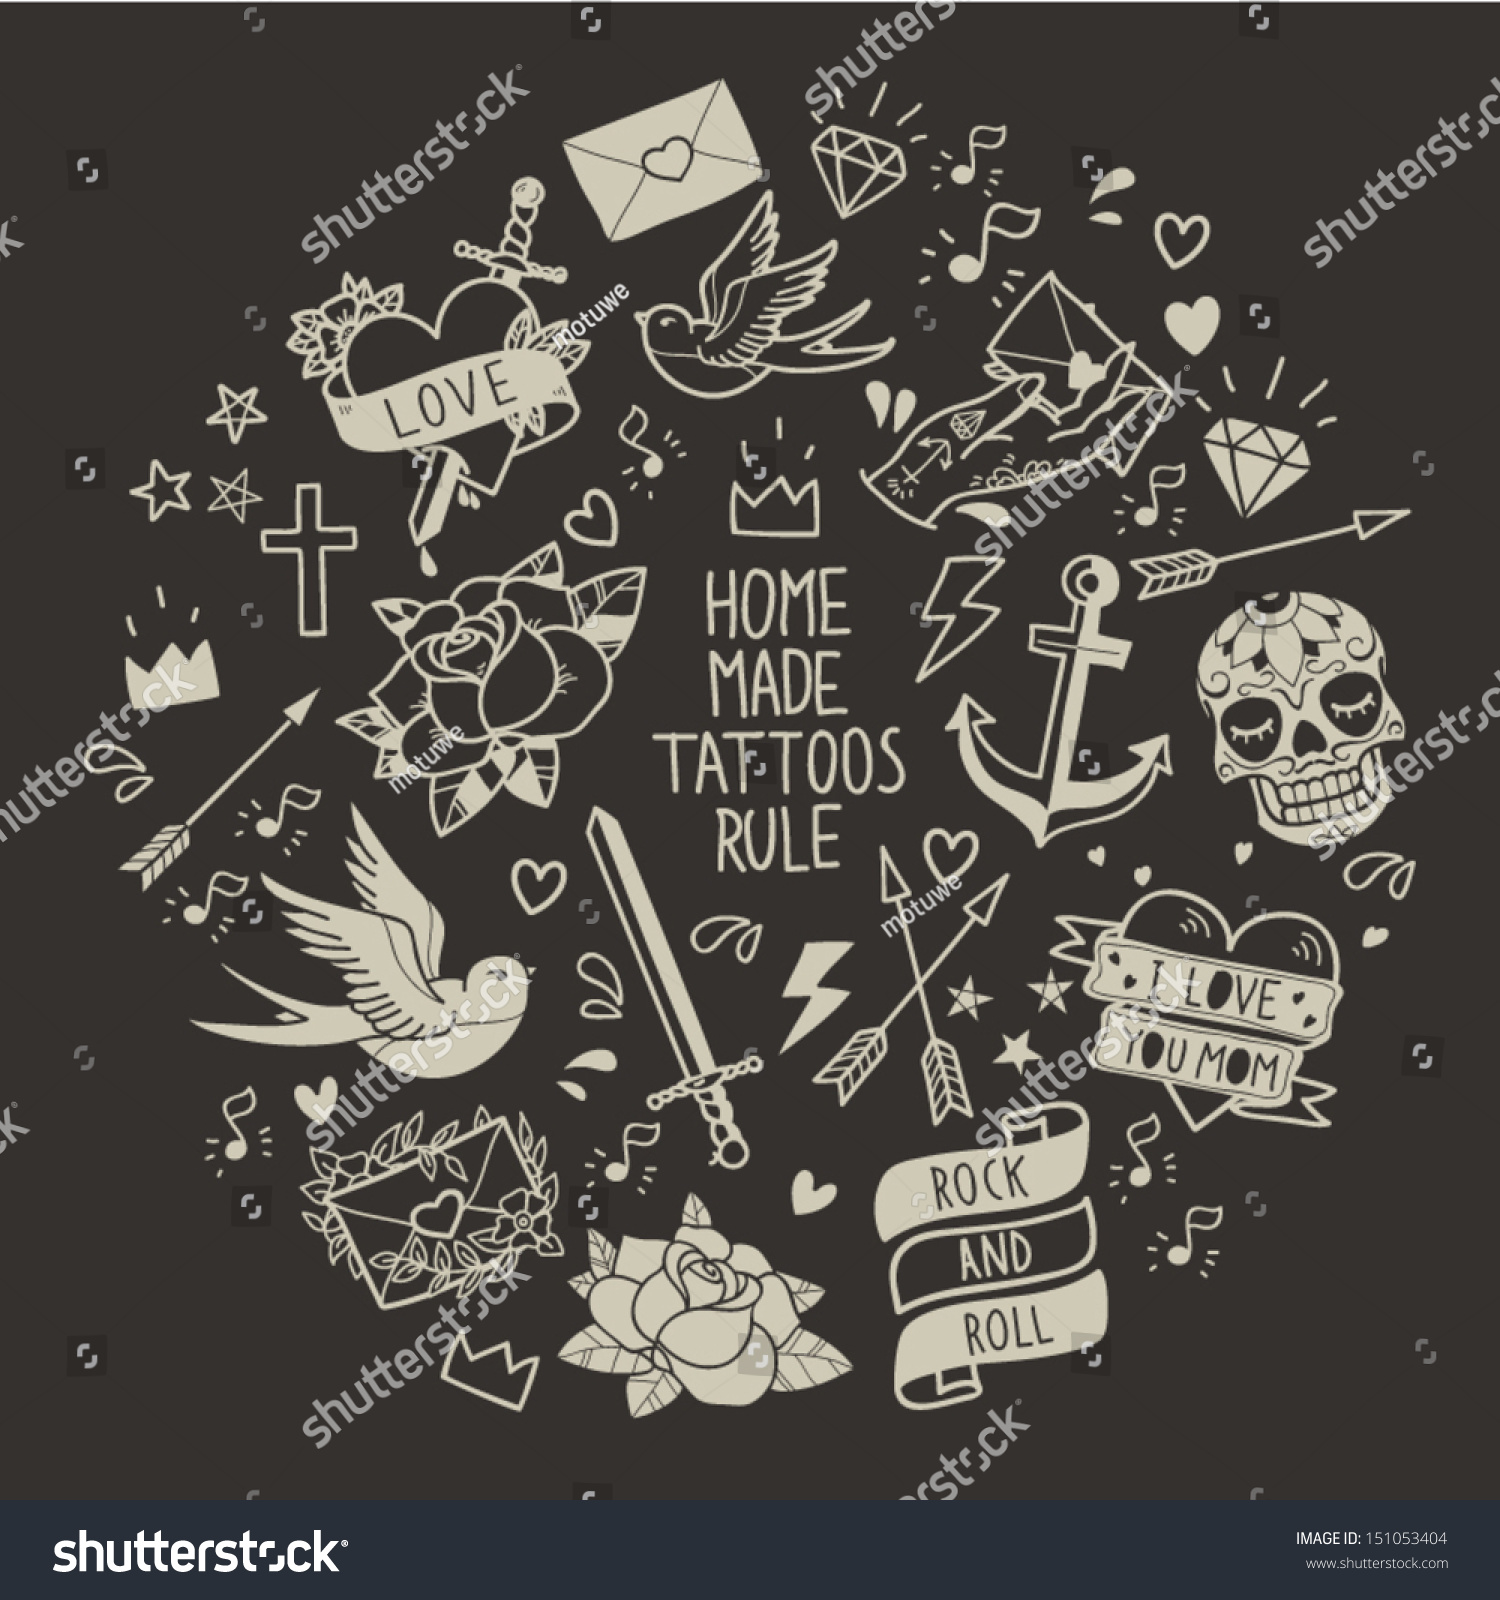 Old school tattoo ve